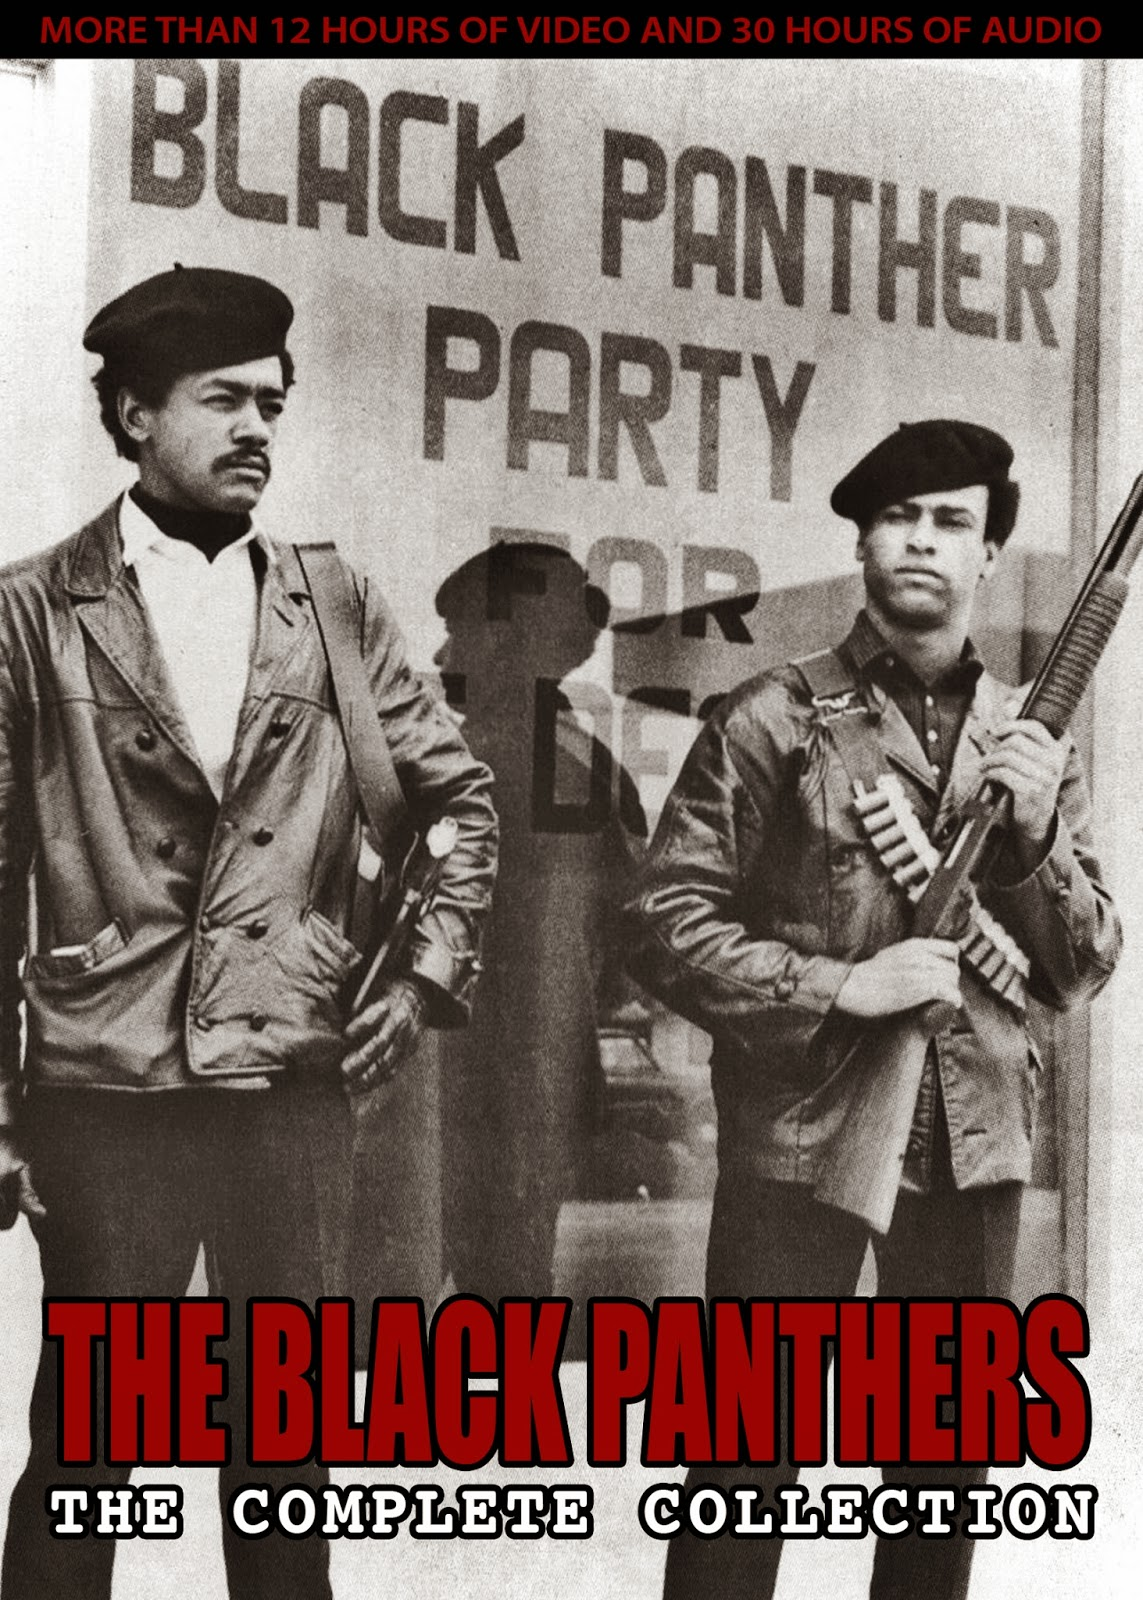 the history of the black panther party in the unites states of america Taylor watched television in awe as armed members of the oakland-based black panther party black panther party and revolution in america united states.